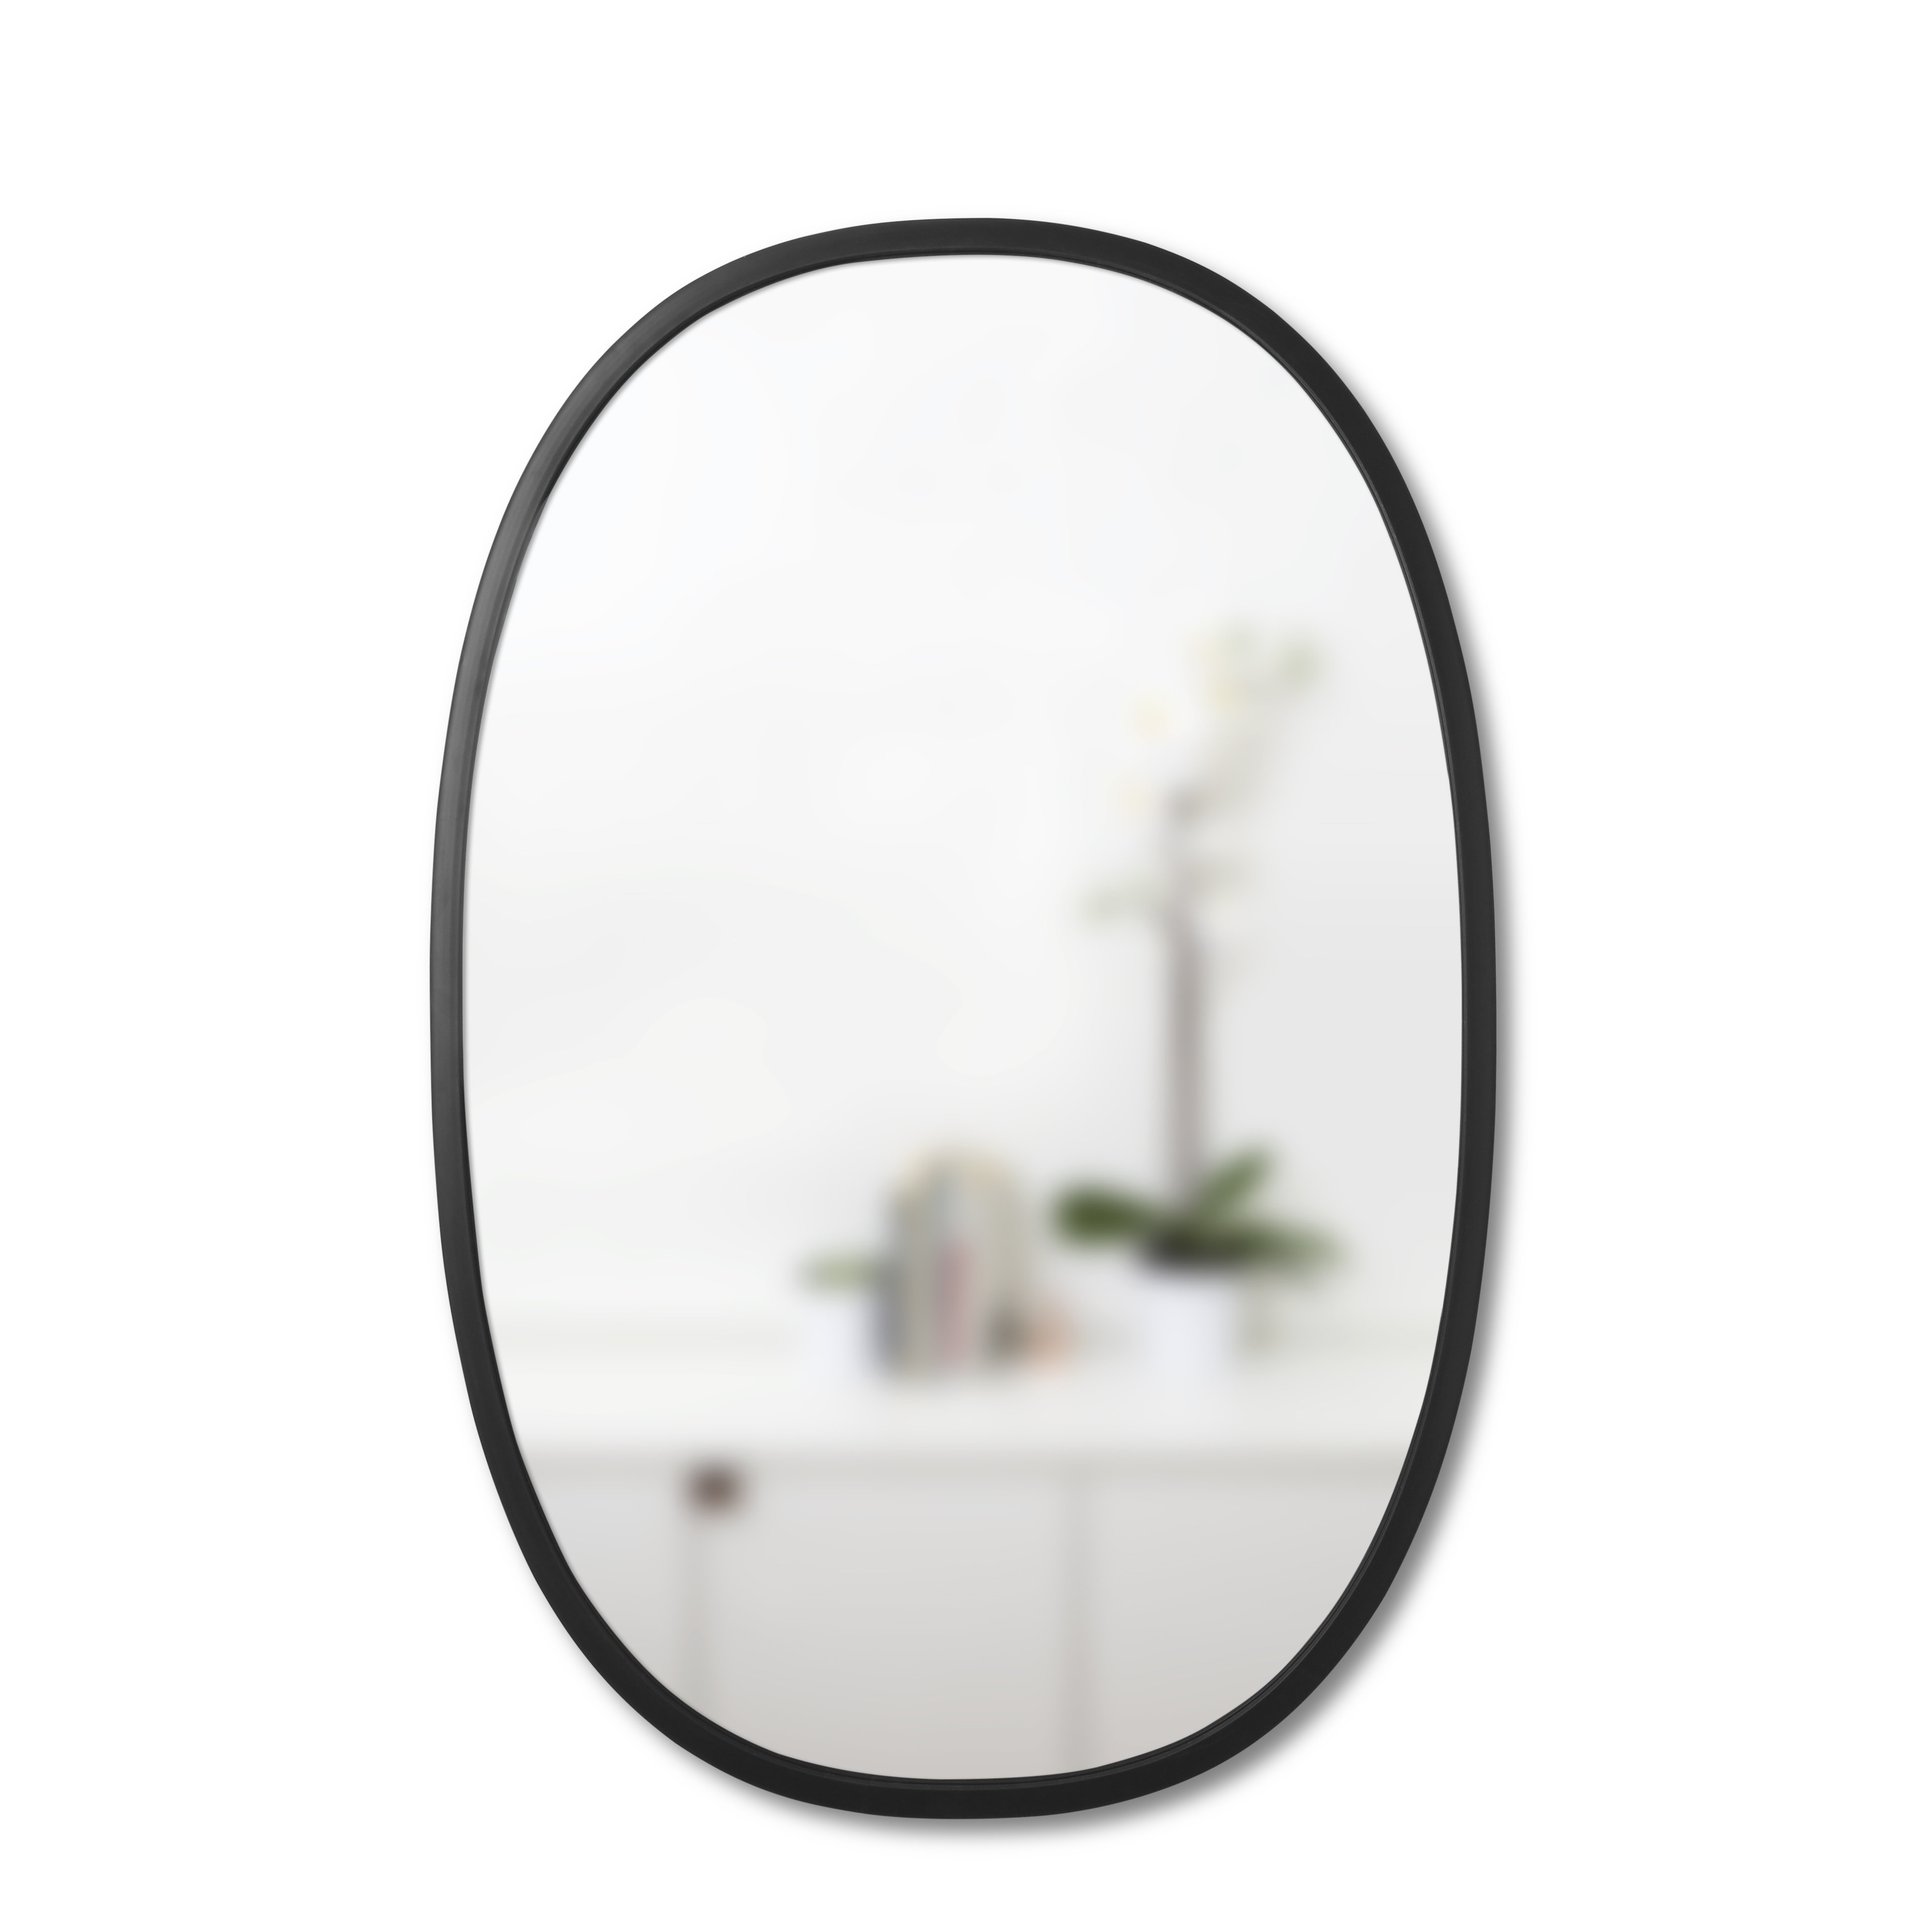 Umbra Hub Modern Contemporary Accent Mirror In Hub Modern And Contemporary Accent Mirrors (Image 20 of 20)